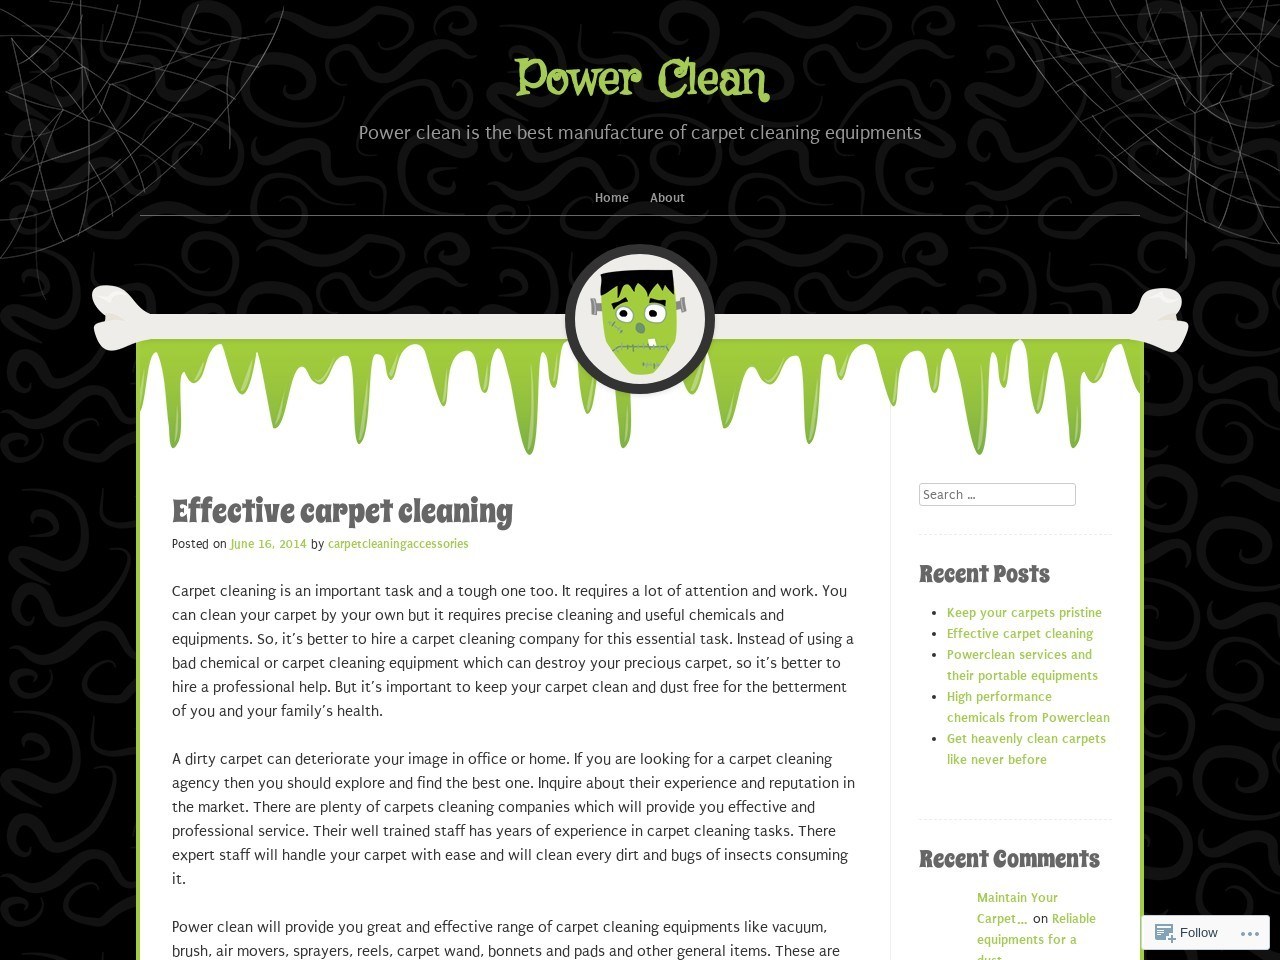 Effective carpet cleaning | Power Clean – WordPress.com